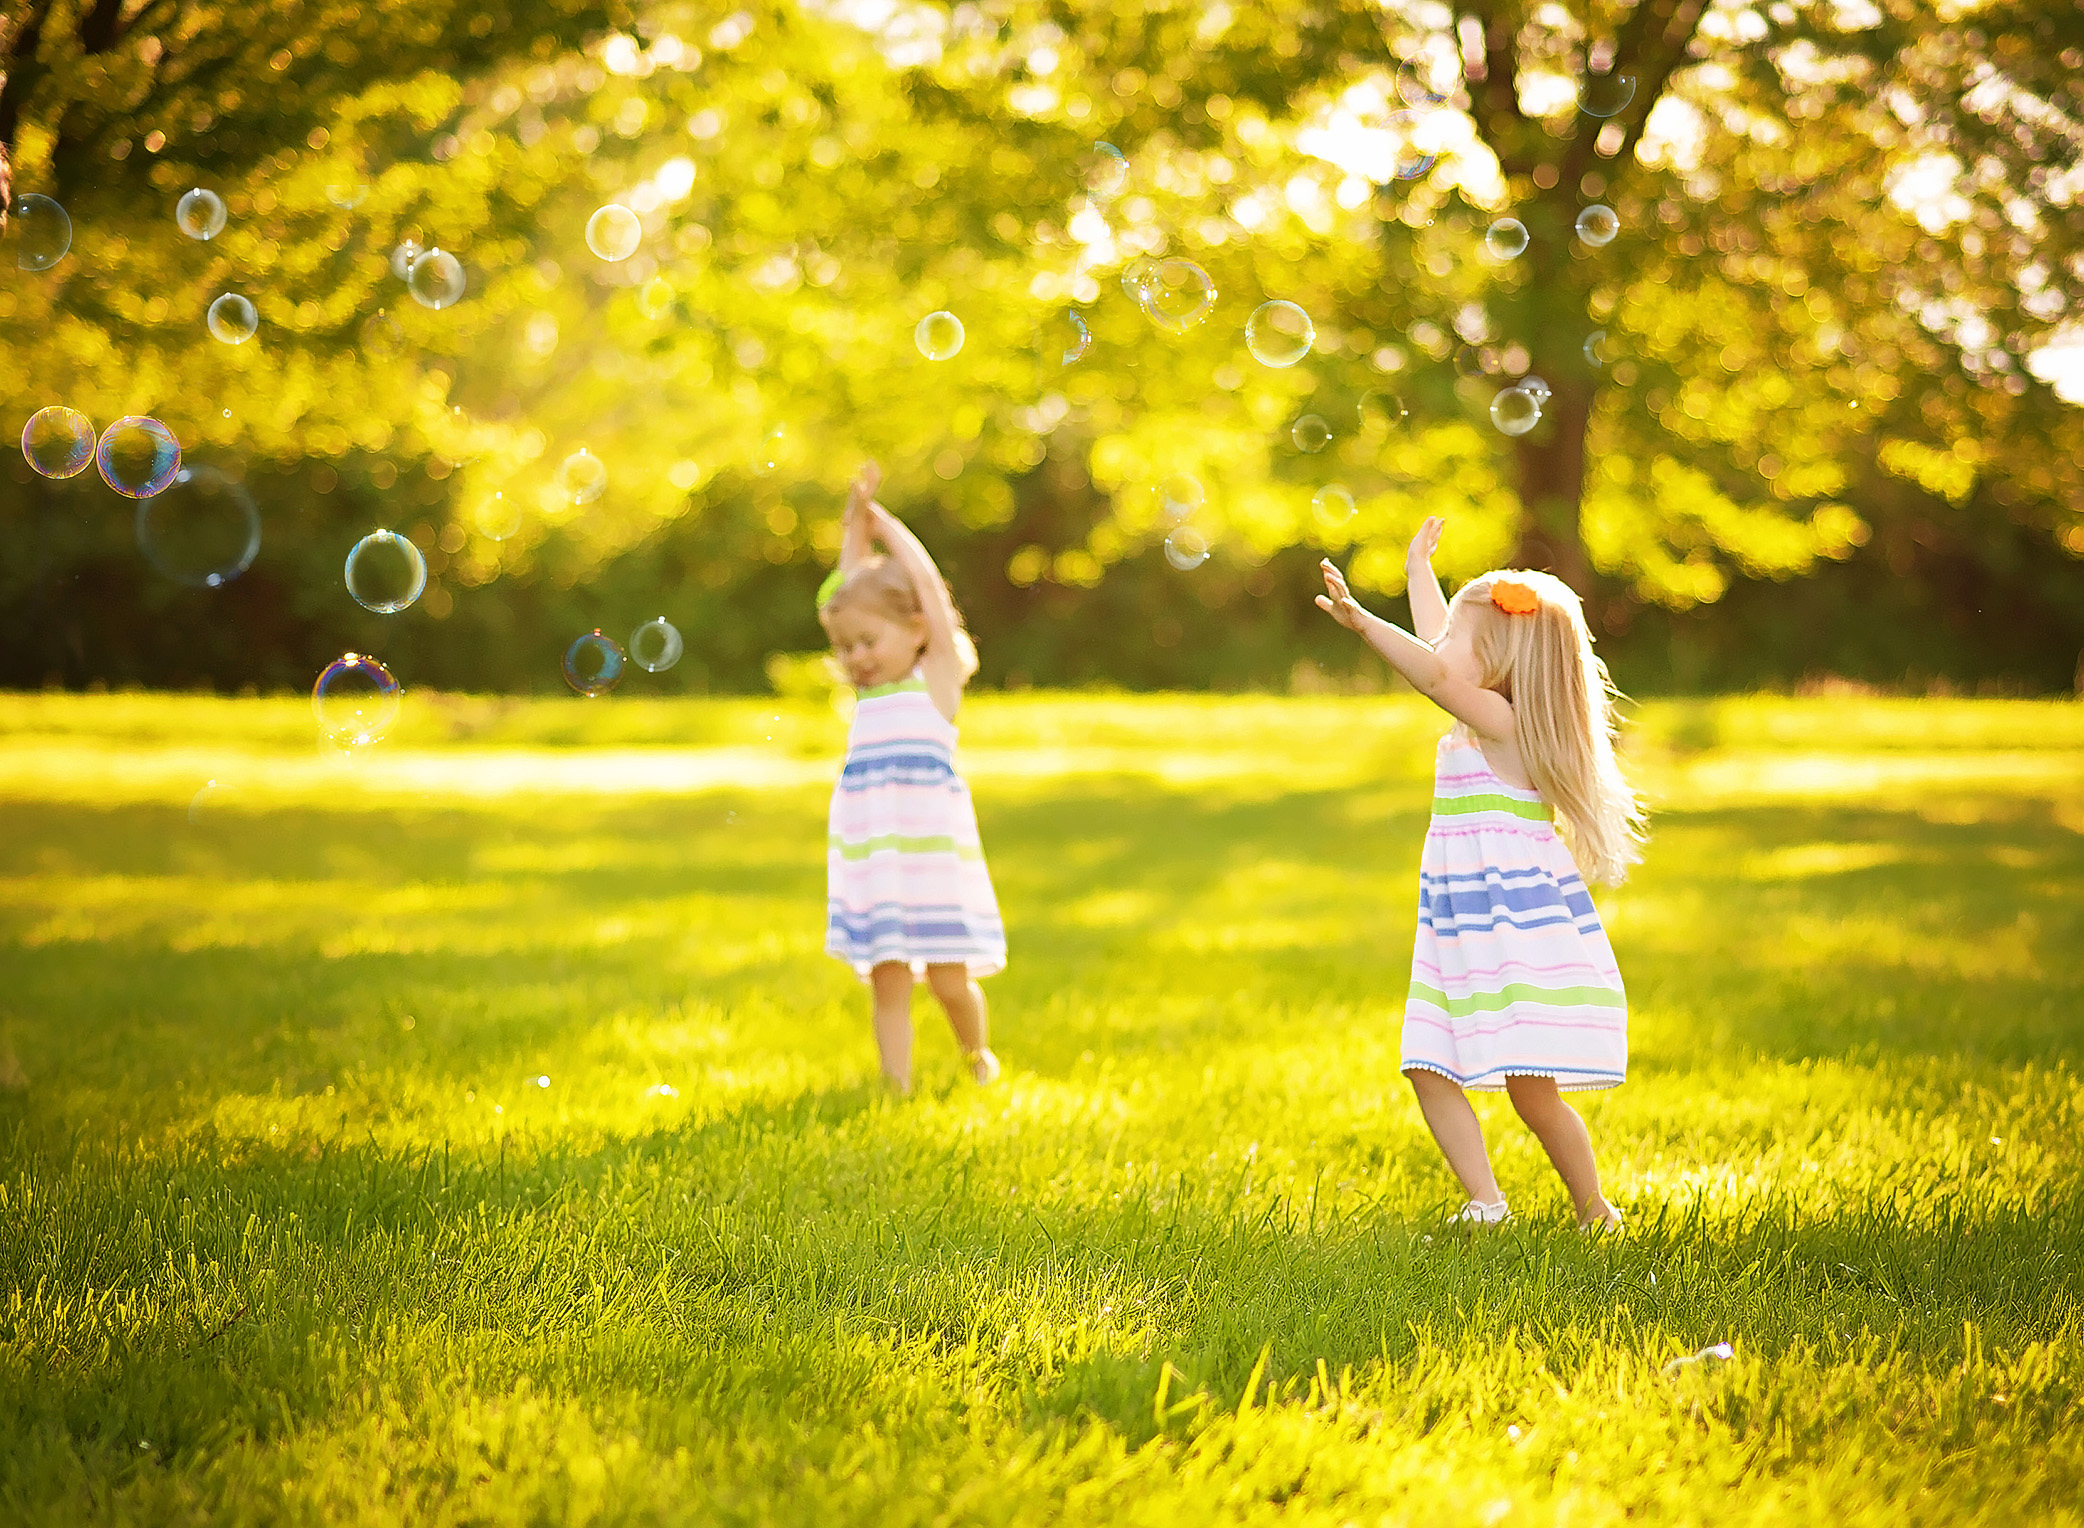 twin girls catching bubbles in a field